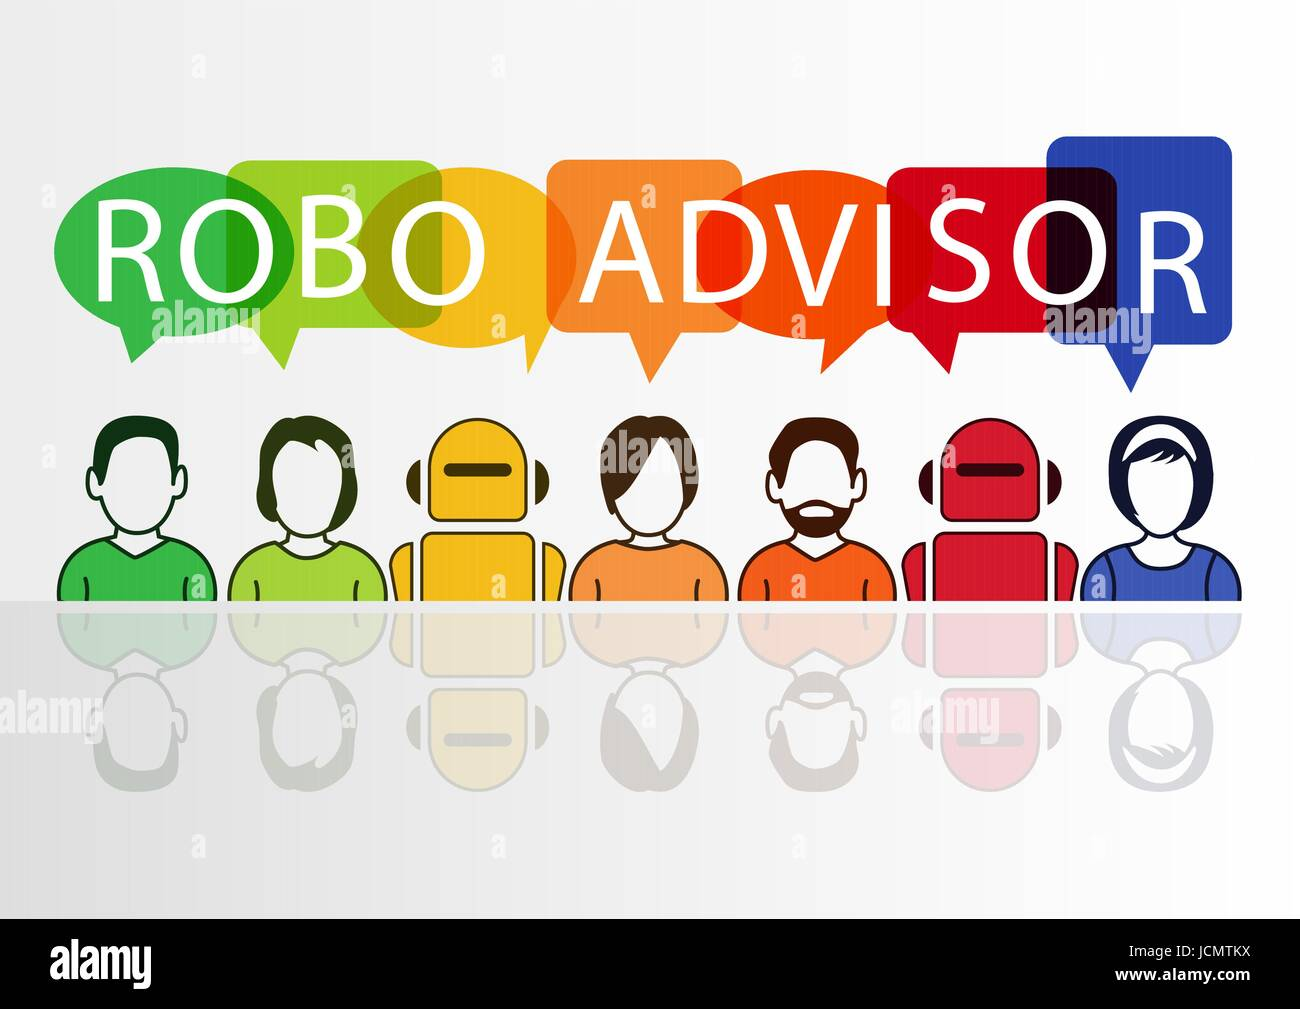 Robo-advisor concept as vector illustration with colorful icons of robots and persons Stock Vector